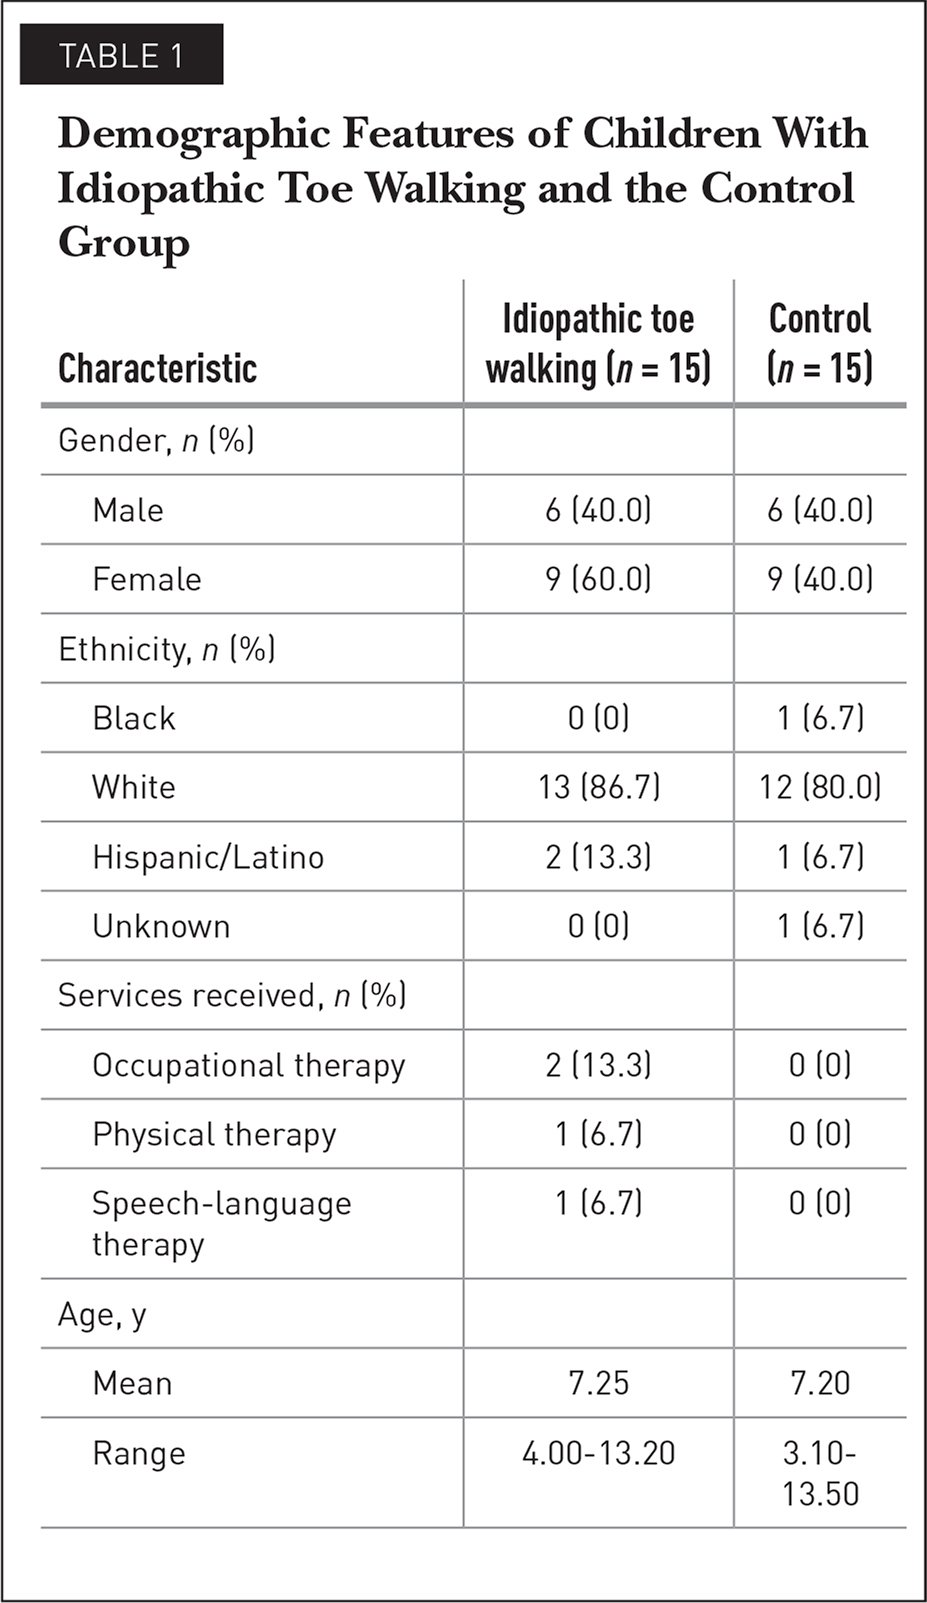 Demographic Features of Children With Idiopathic Toe Walking and the Control Group